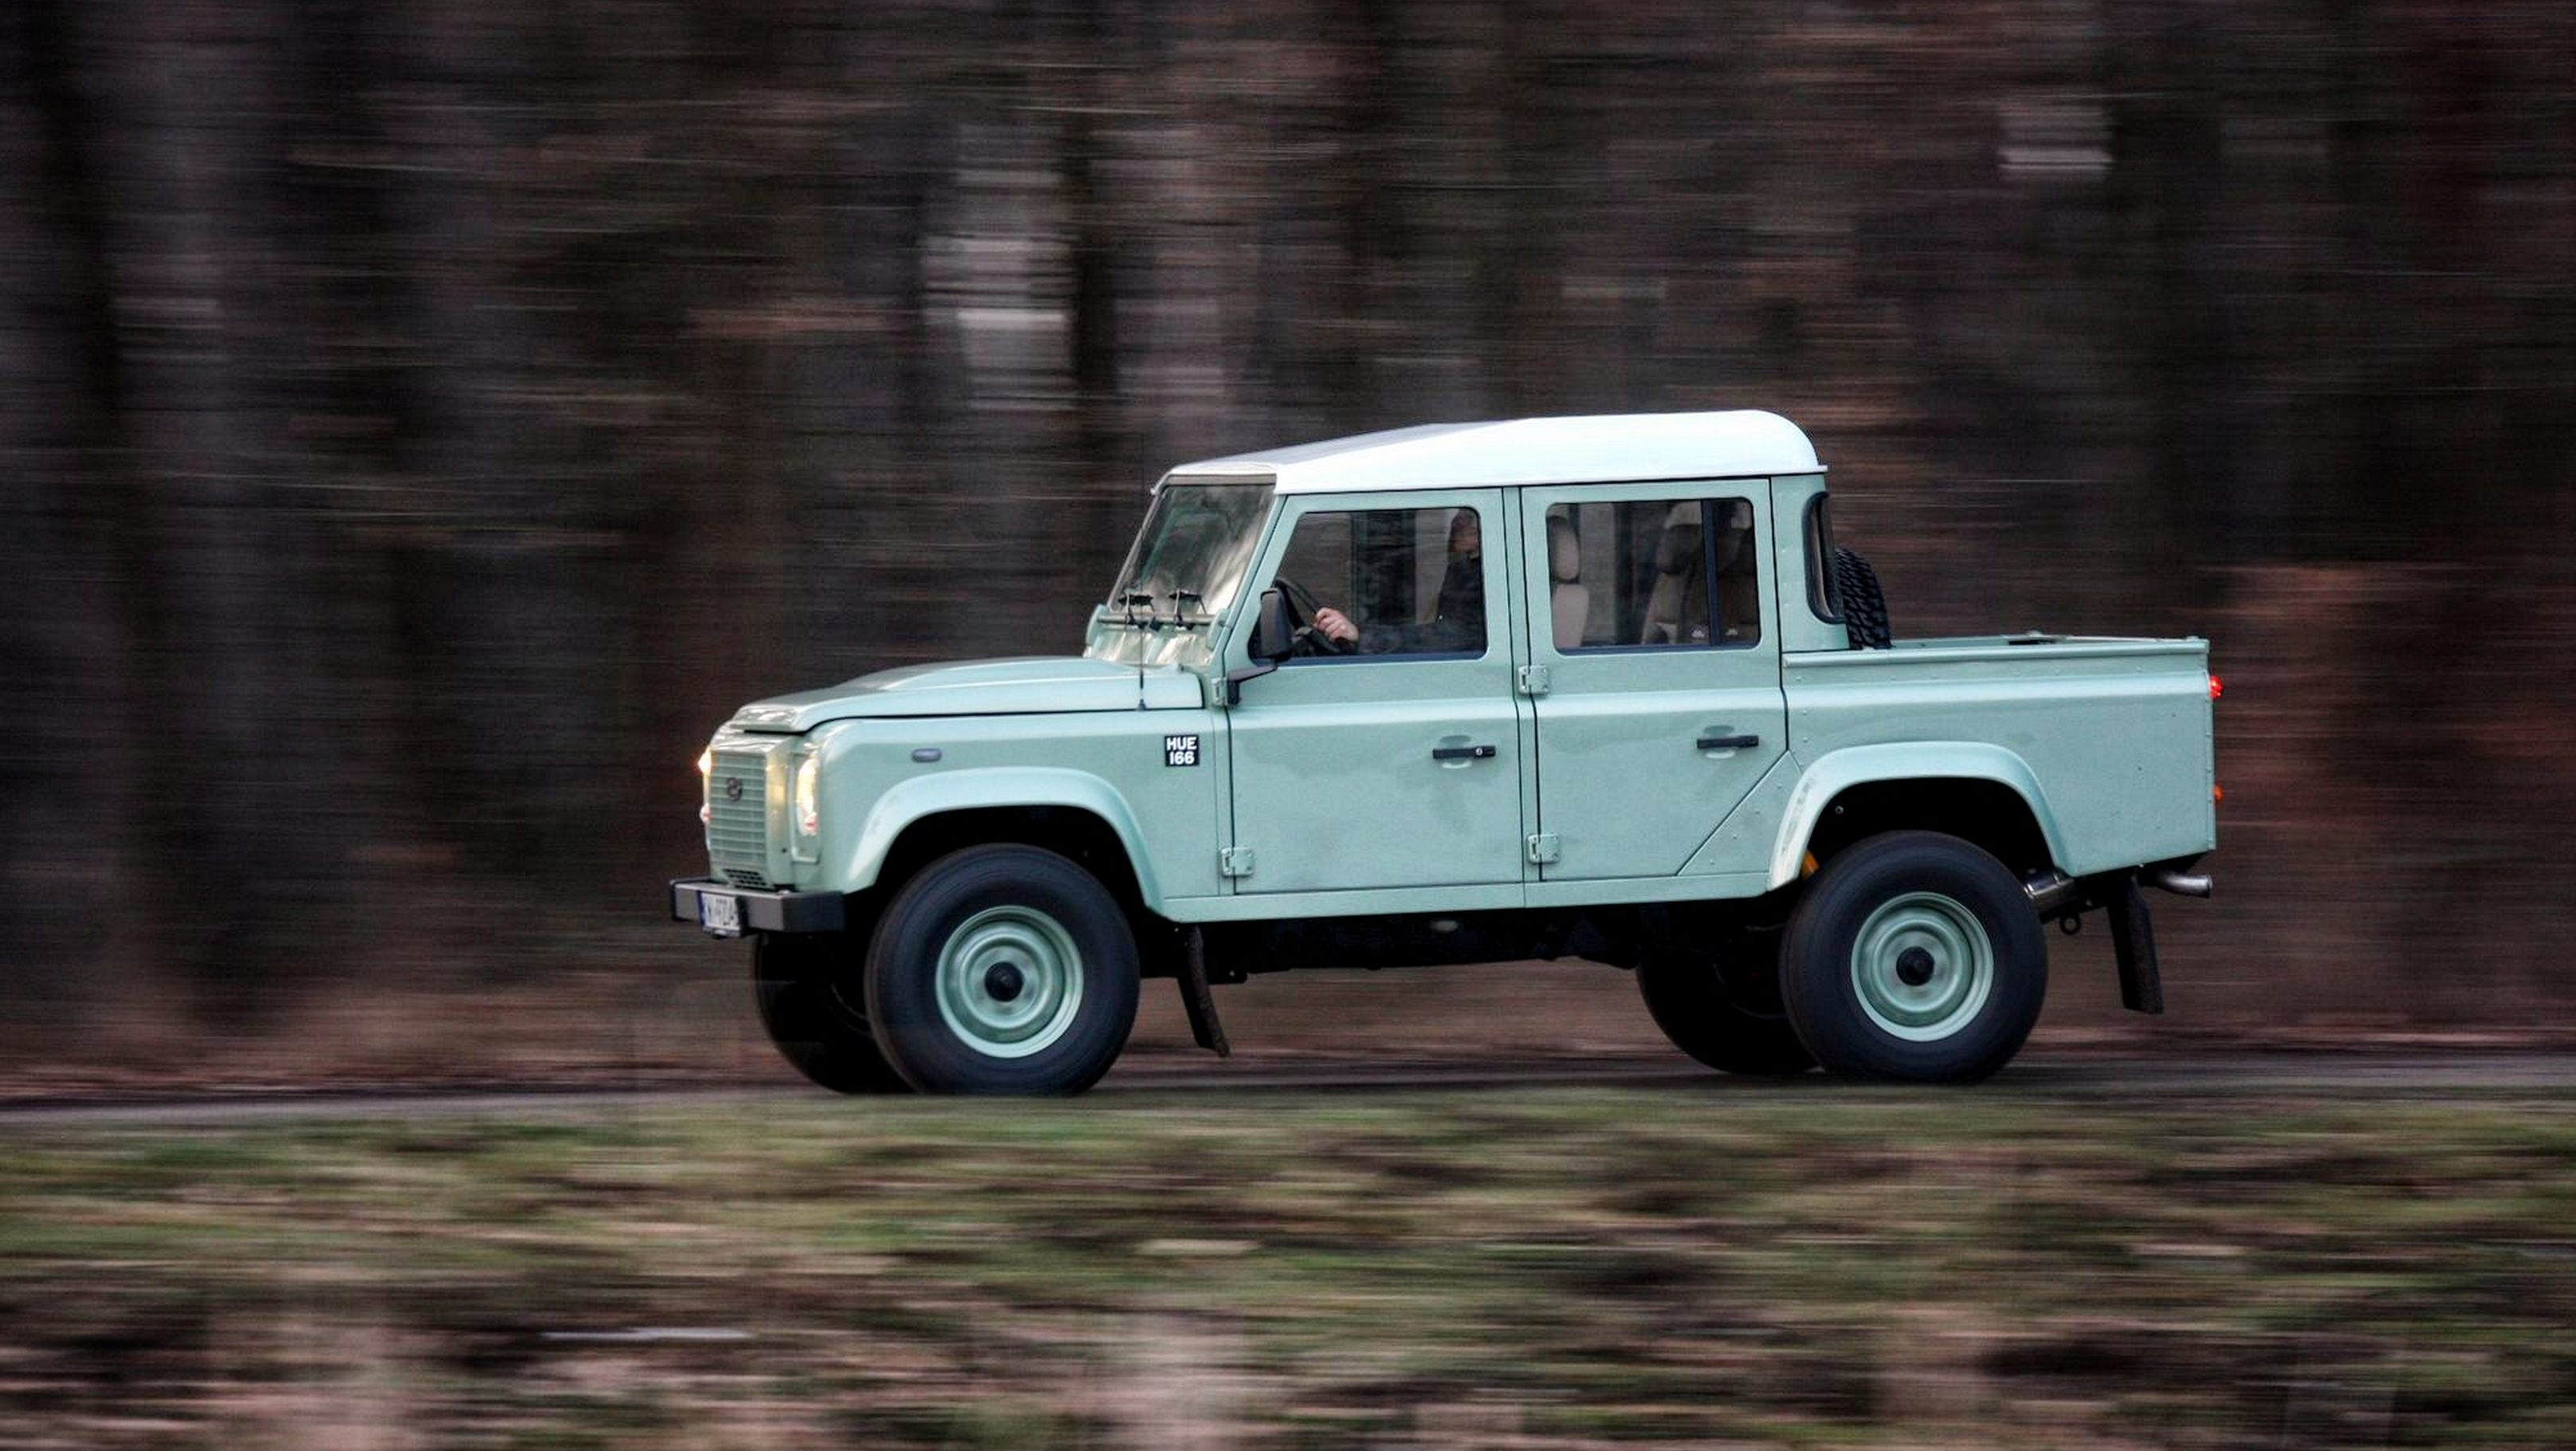 Land Serwis Will Build You a New Land Rover Defender